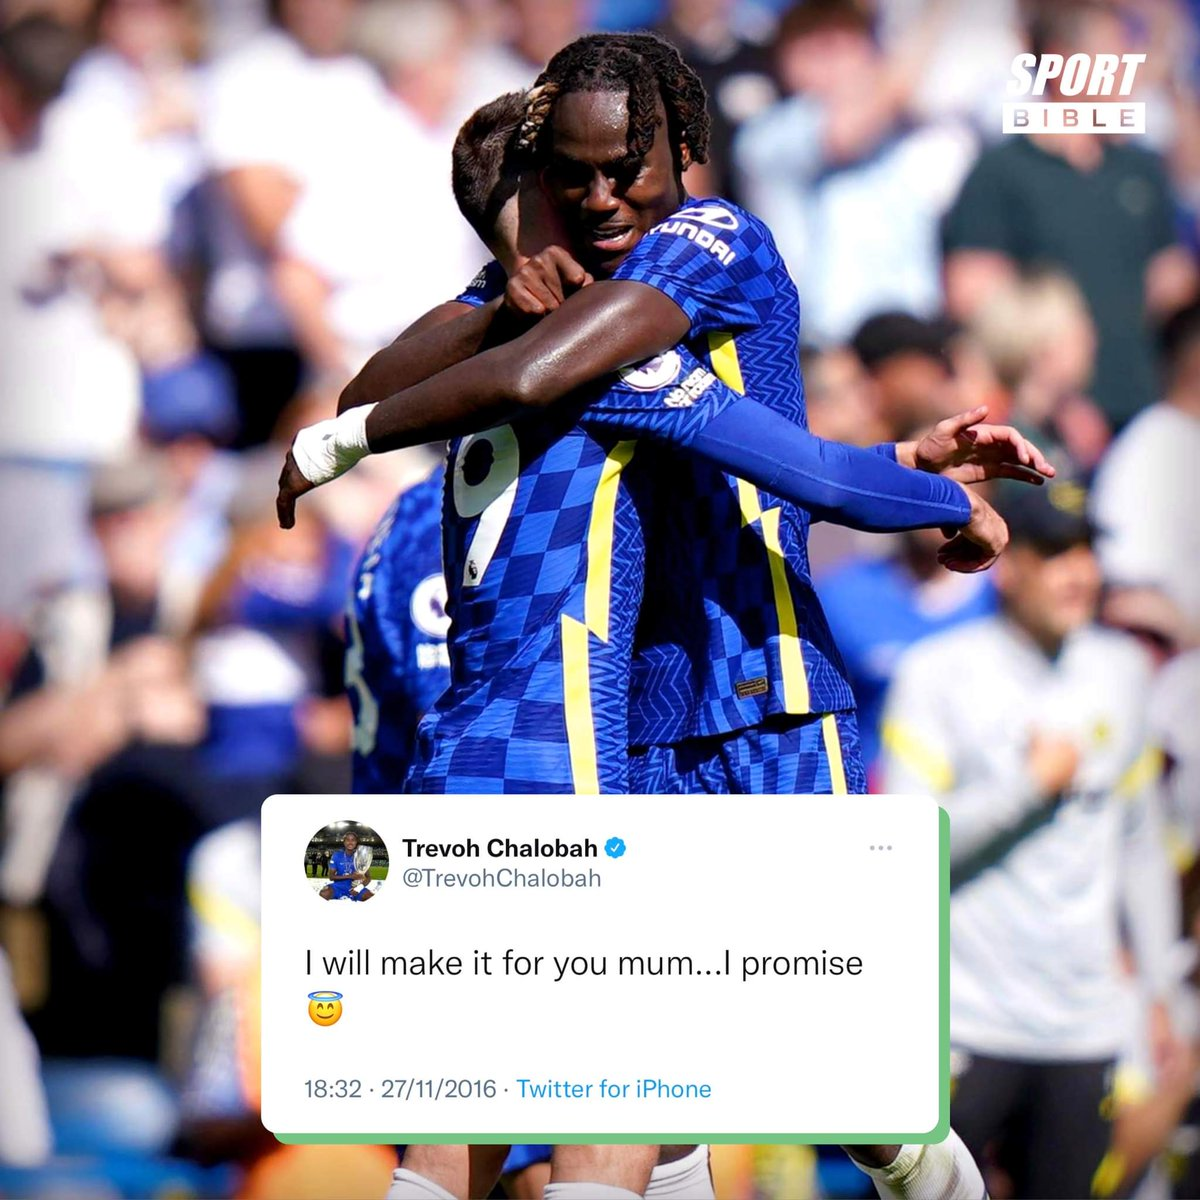 In 2016, Trevoh Chalobah made his late mum a promise that he would 'make it' for her 🥺 Today, he made his Premier League debut, bossed the performance and scored a fantastic goal 🙌 Five years on, he came good on his promise 💙